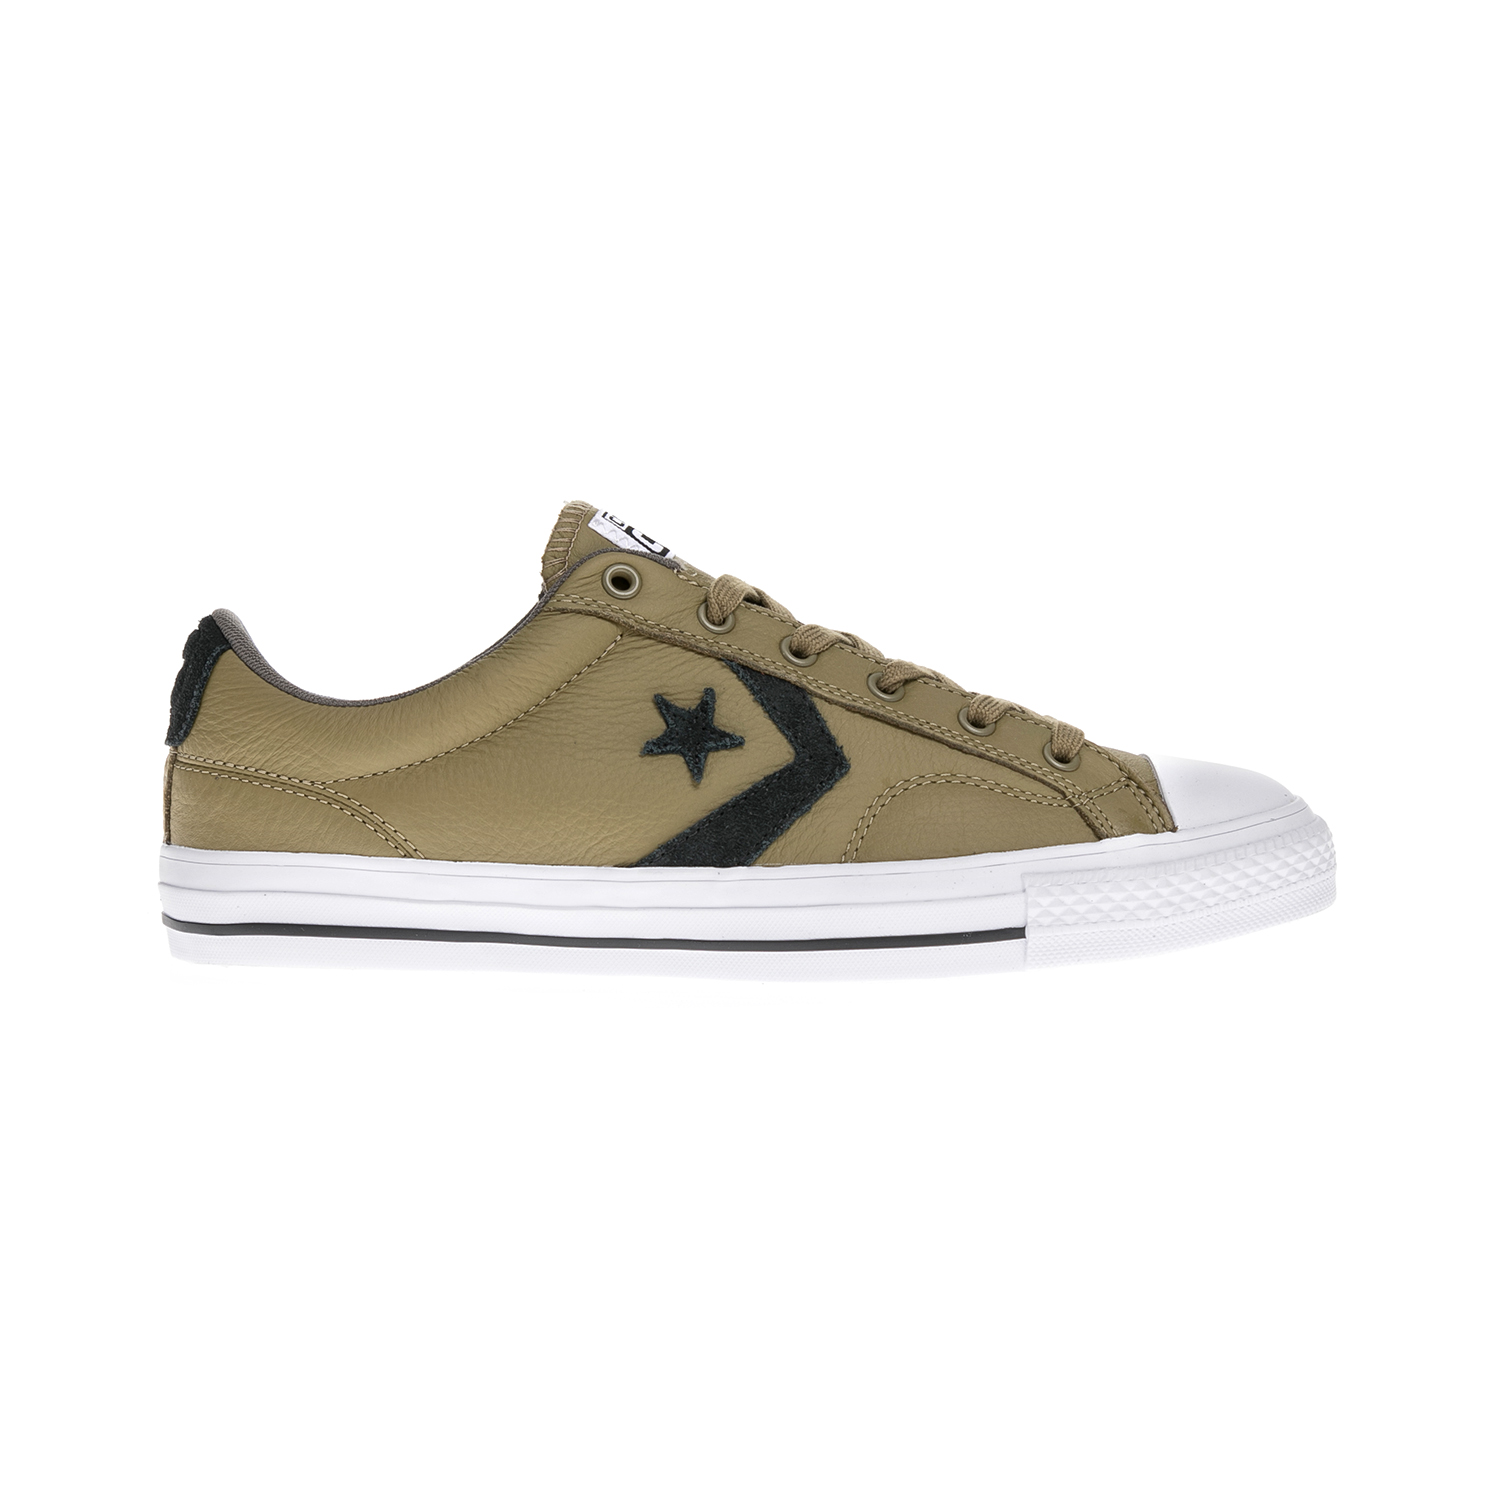 8093ee03308e CONVERSE - Unisex παπούτσια Star Player Ox χακί